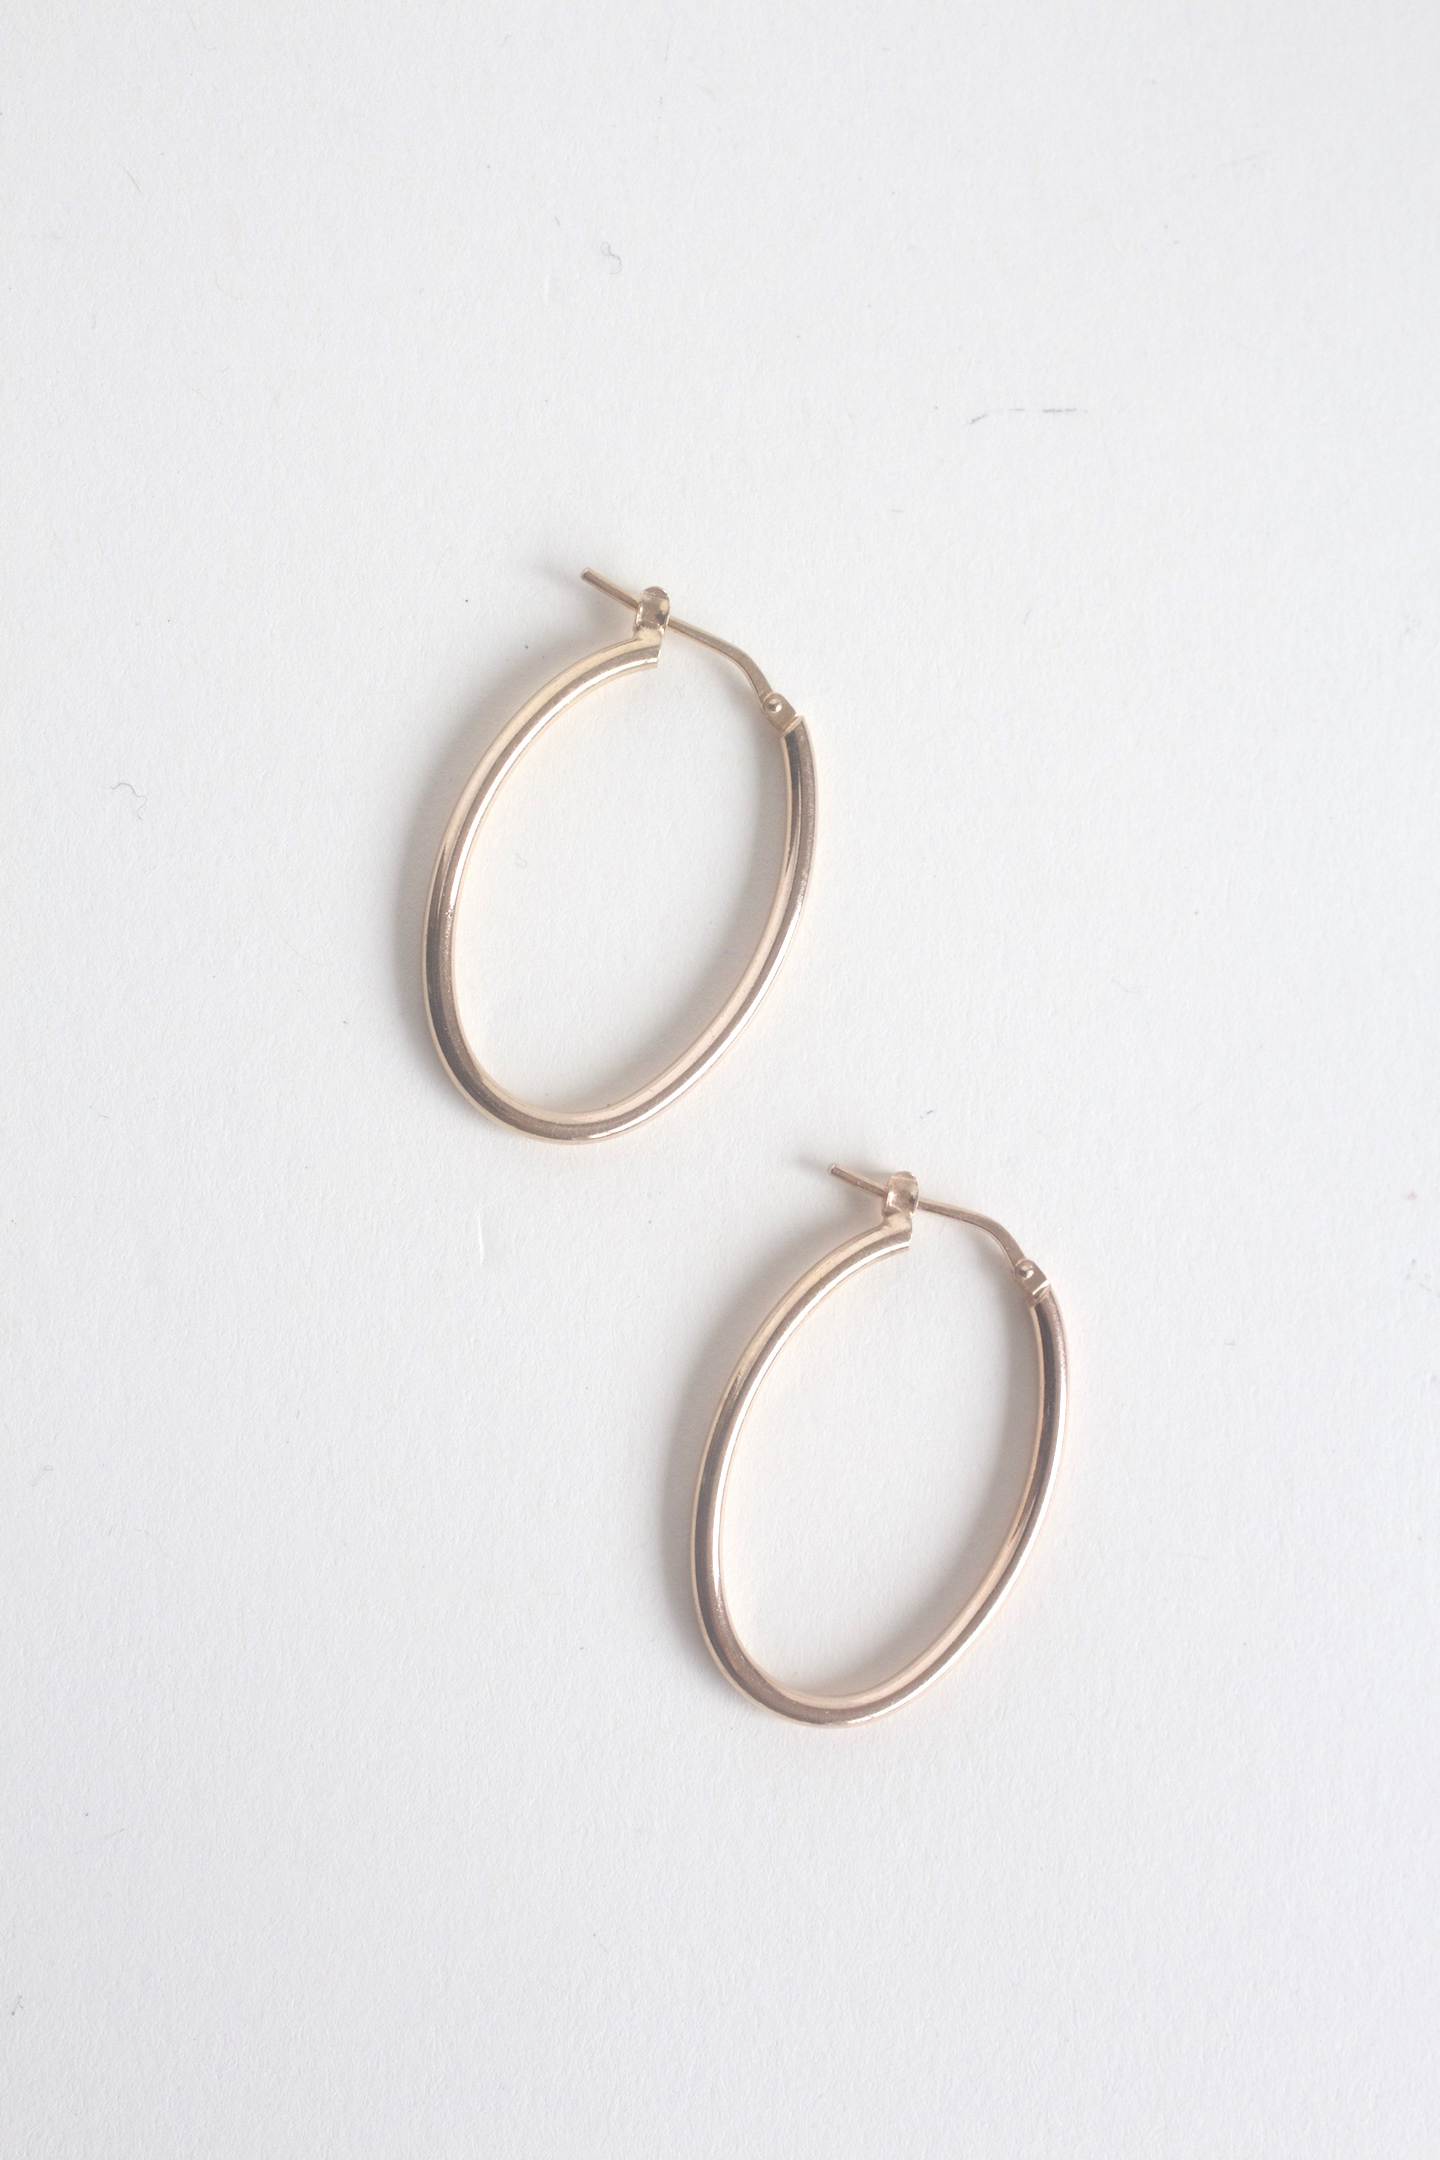 Lightweight Gold Plated Sterling Silver Oval hoops